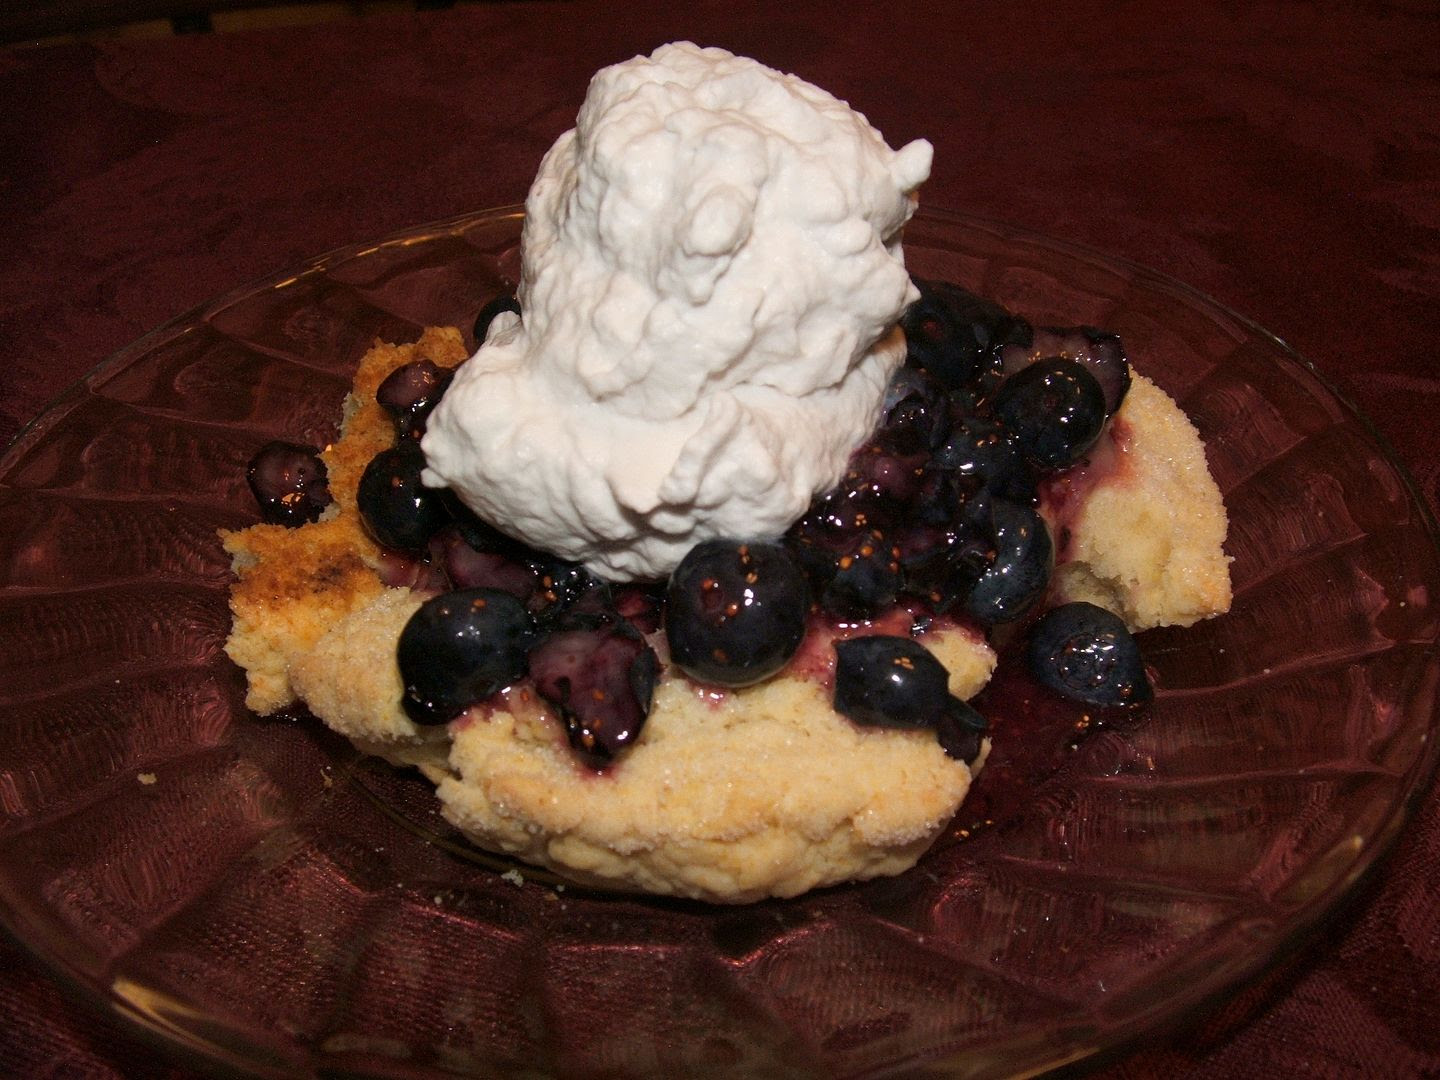 Blueberry Lemon Shortcake by Angie Ouellette-Tower for godsgrowinggarden.com photo 010_zpsaf2a94be.jpg